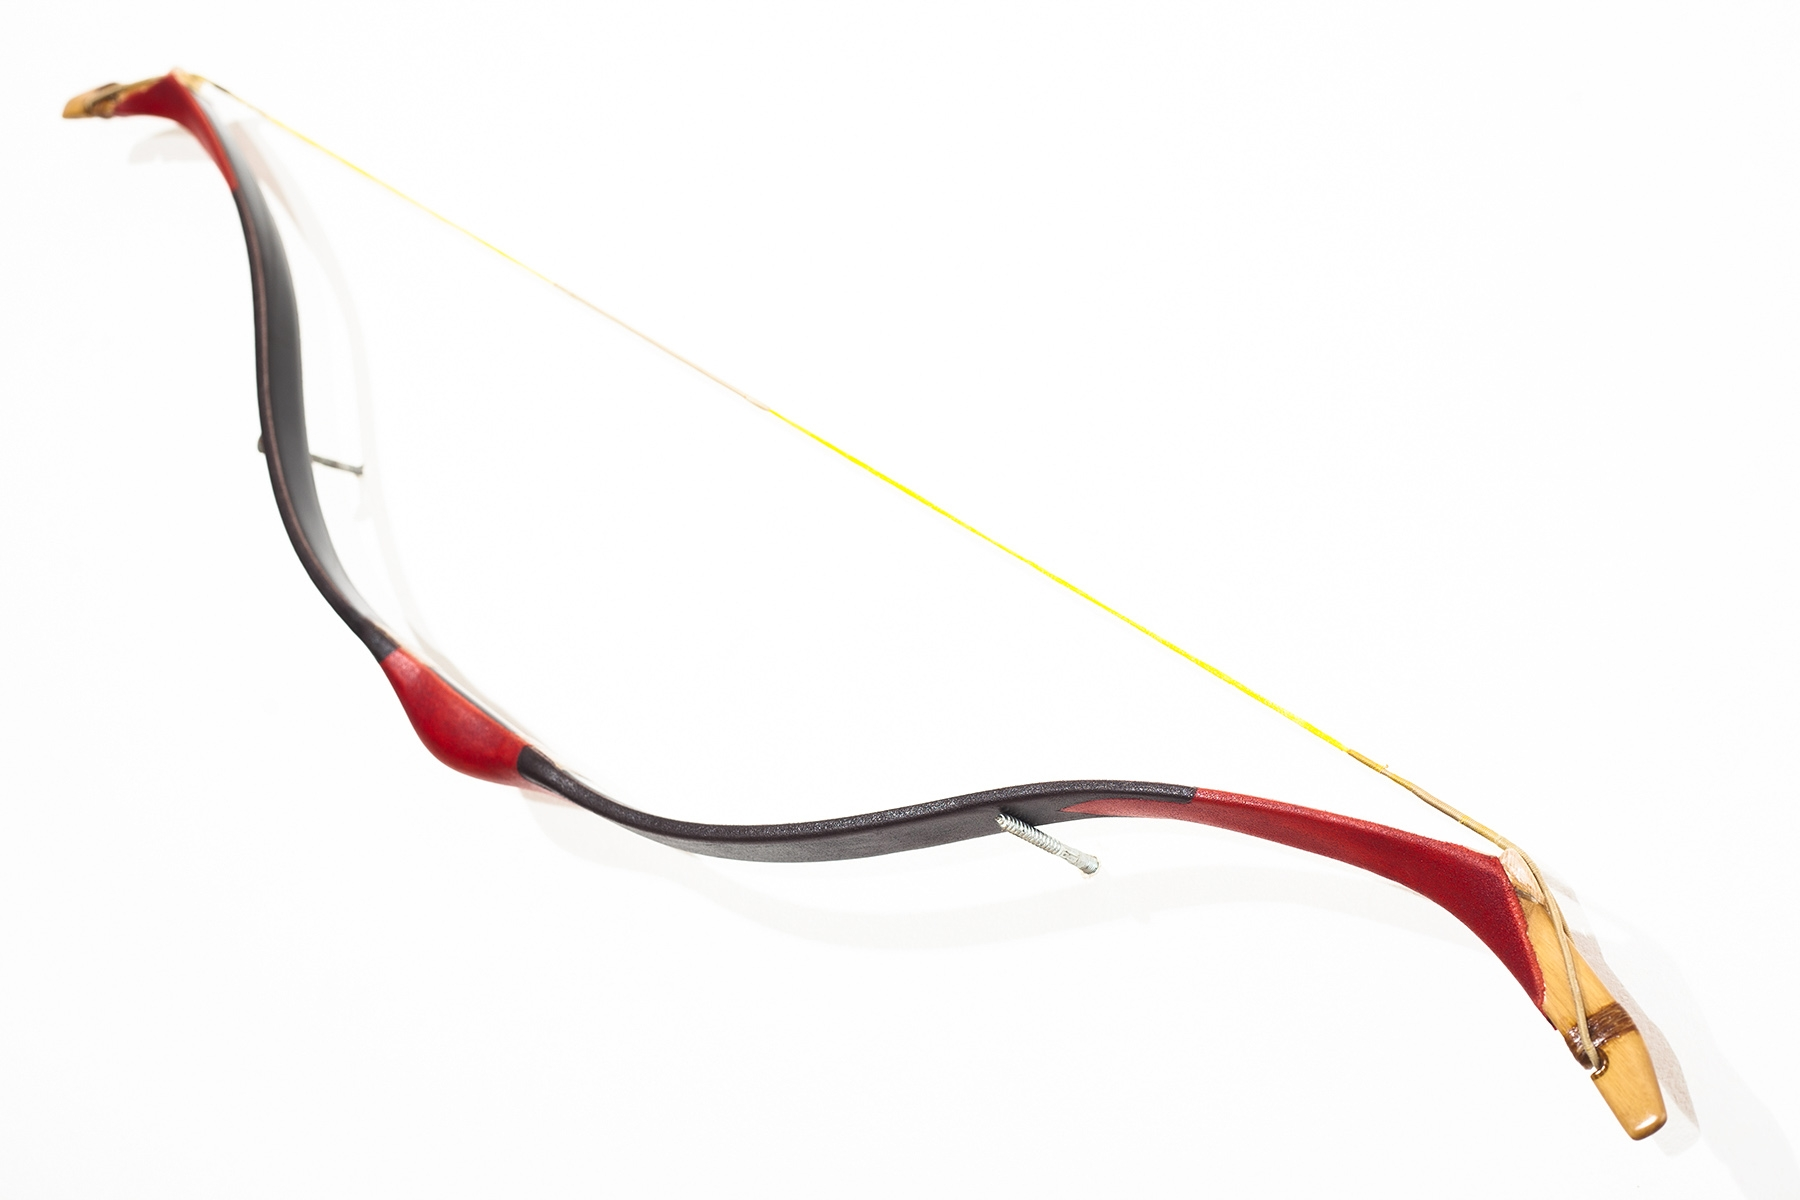 Turkish Biocomposite recurve bow